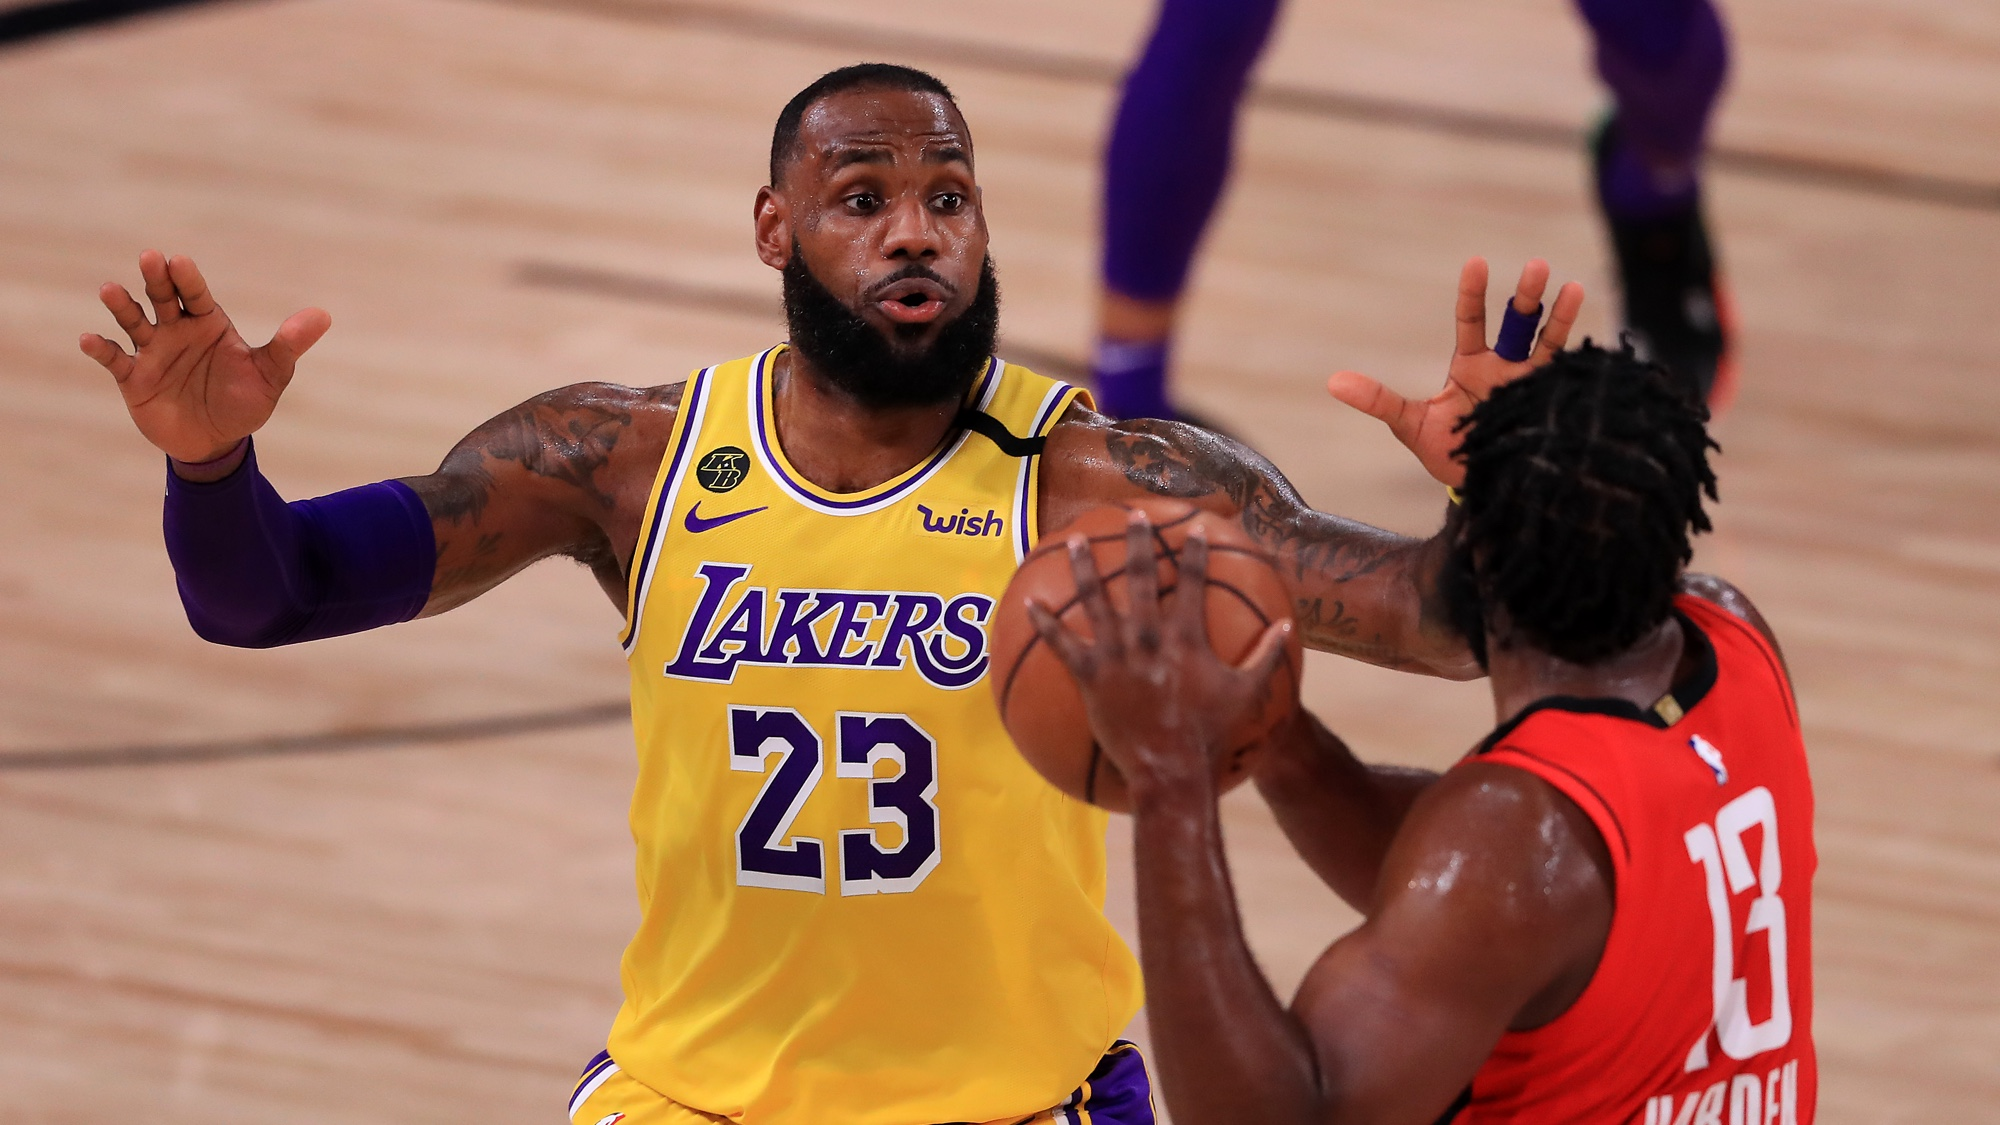 Lakers Vs Rockets Live Stream How To Watch Game 5 Of The Nba Playoffs Online Tom S Guide